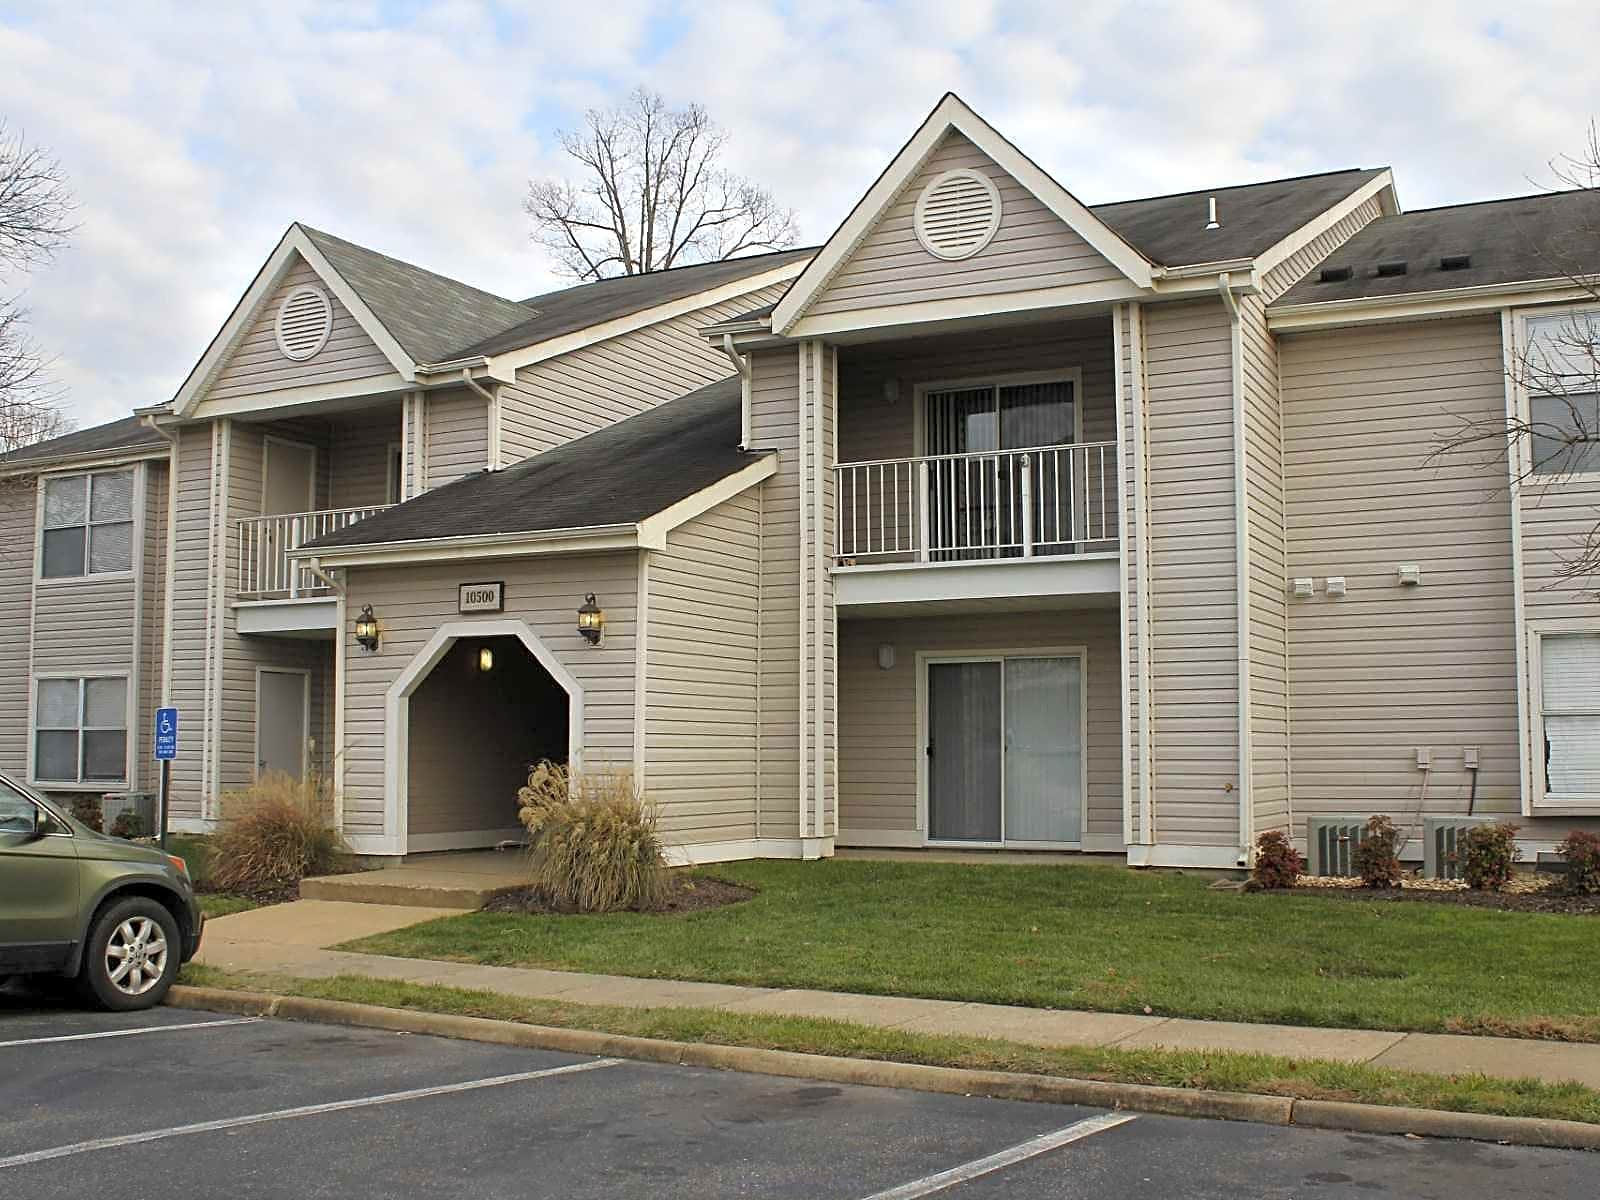 Photo: Fredericksburg Apartment for Rent - $908.00 / month; 2 Bd & 2 Ba